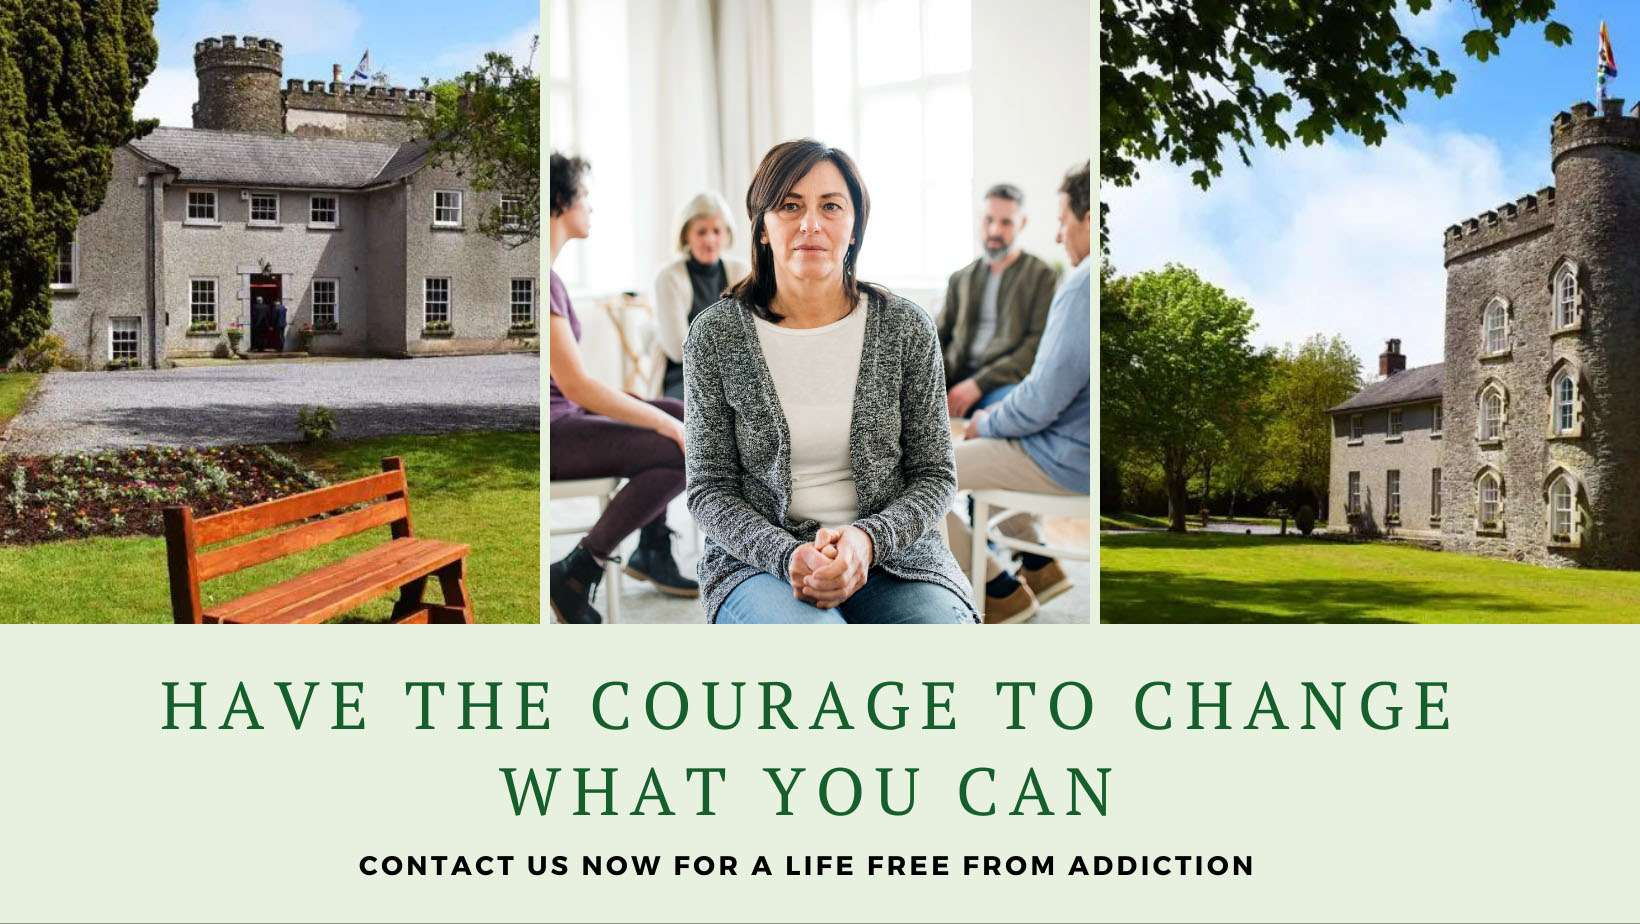 Contact us to become free from your addiction